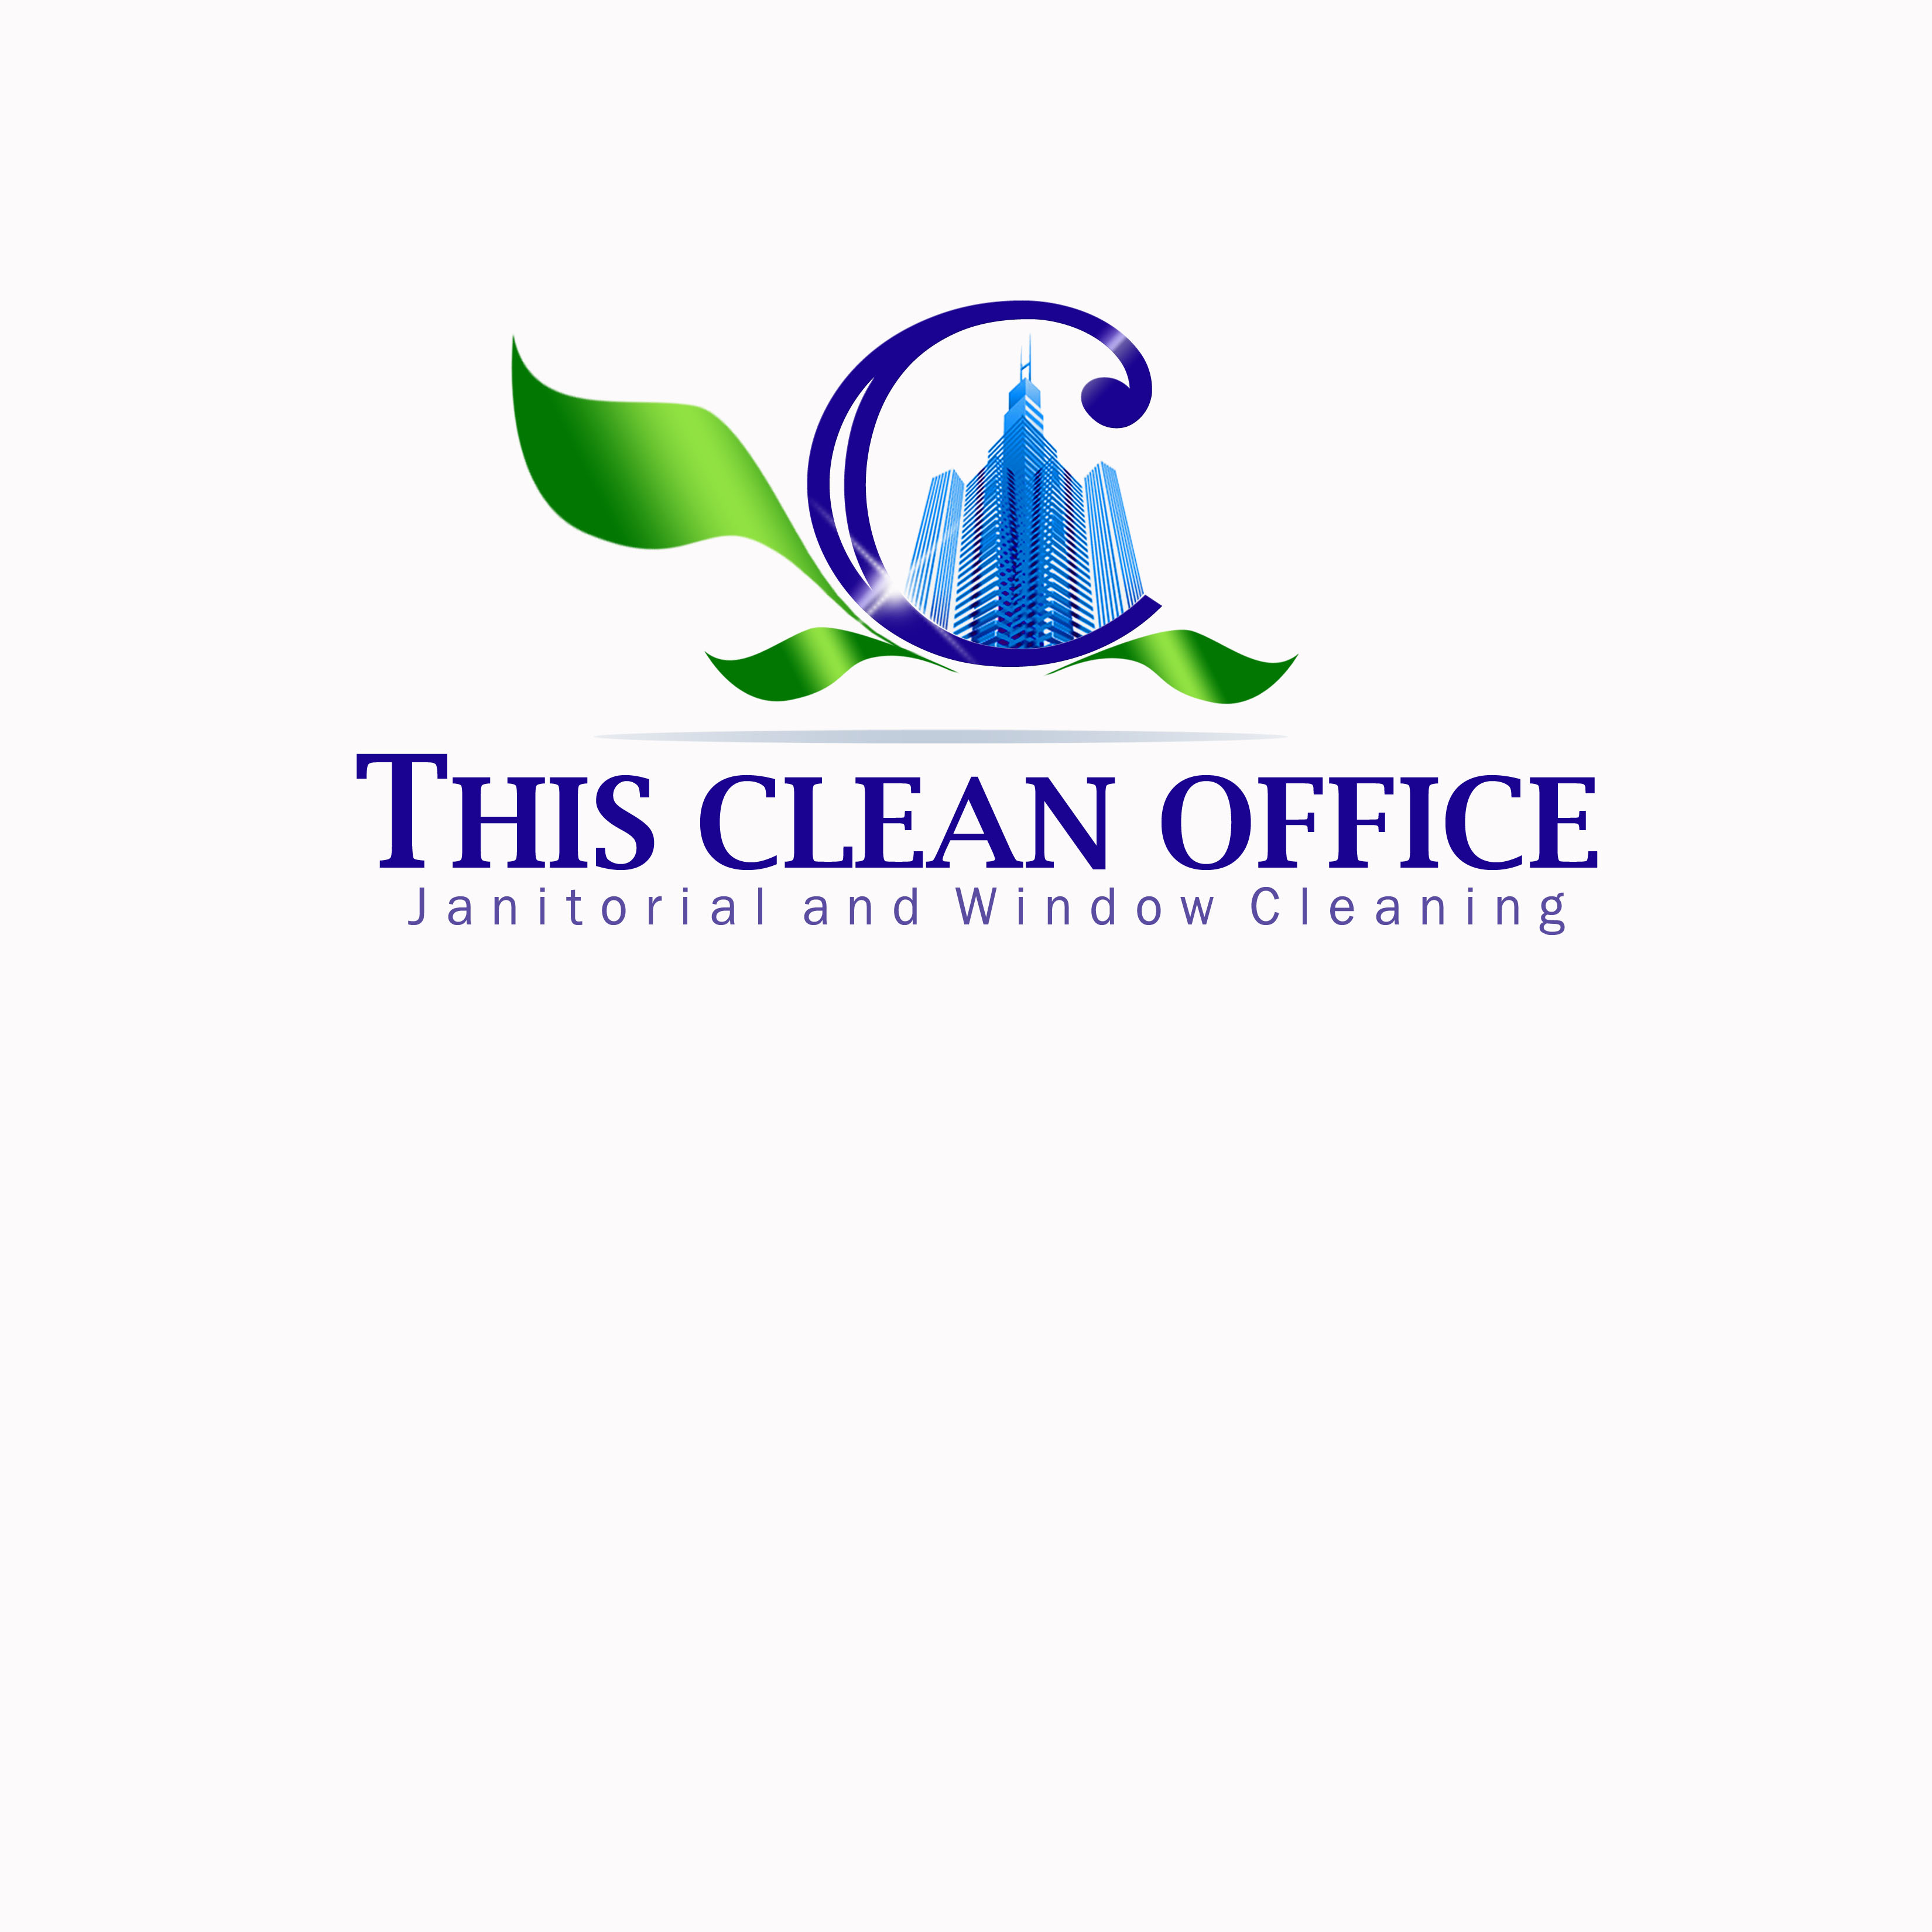 Logo Design by Allan Esclamado - Entry No. 78 in the Logo Design Contest Professional and Unforgettable Logo Design for This Clean Office.